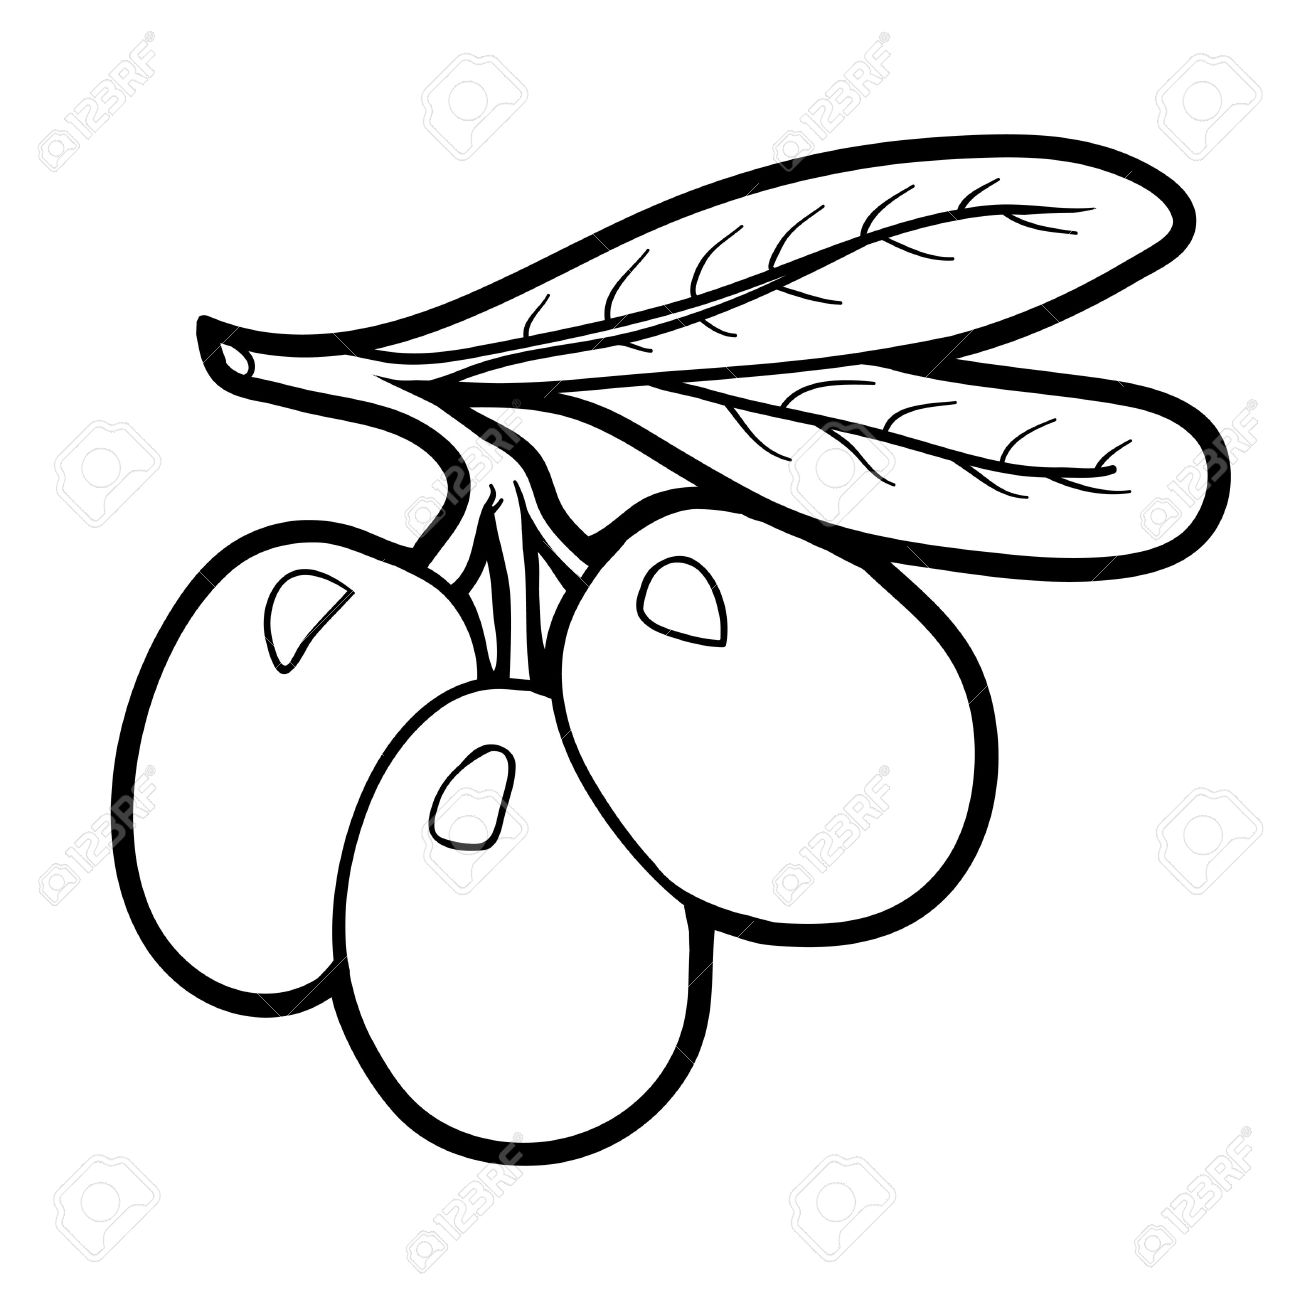 Coloring Book For Children Fruits And Vegetables Olives Stock Vector